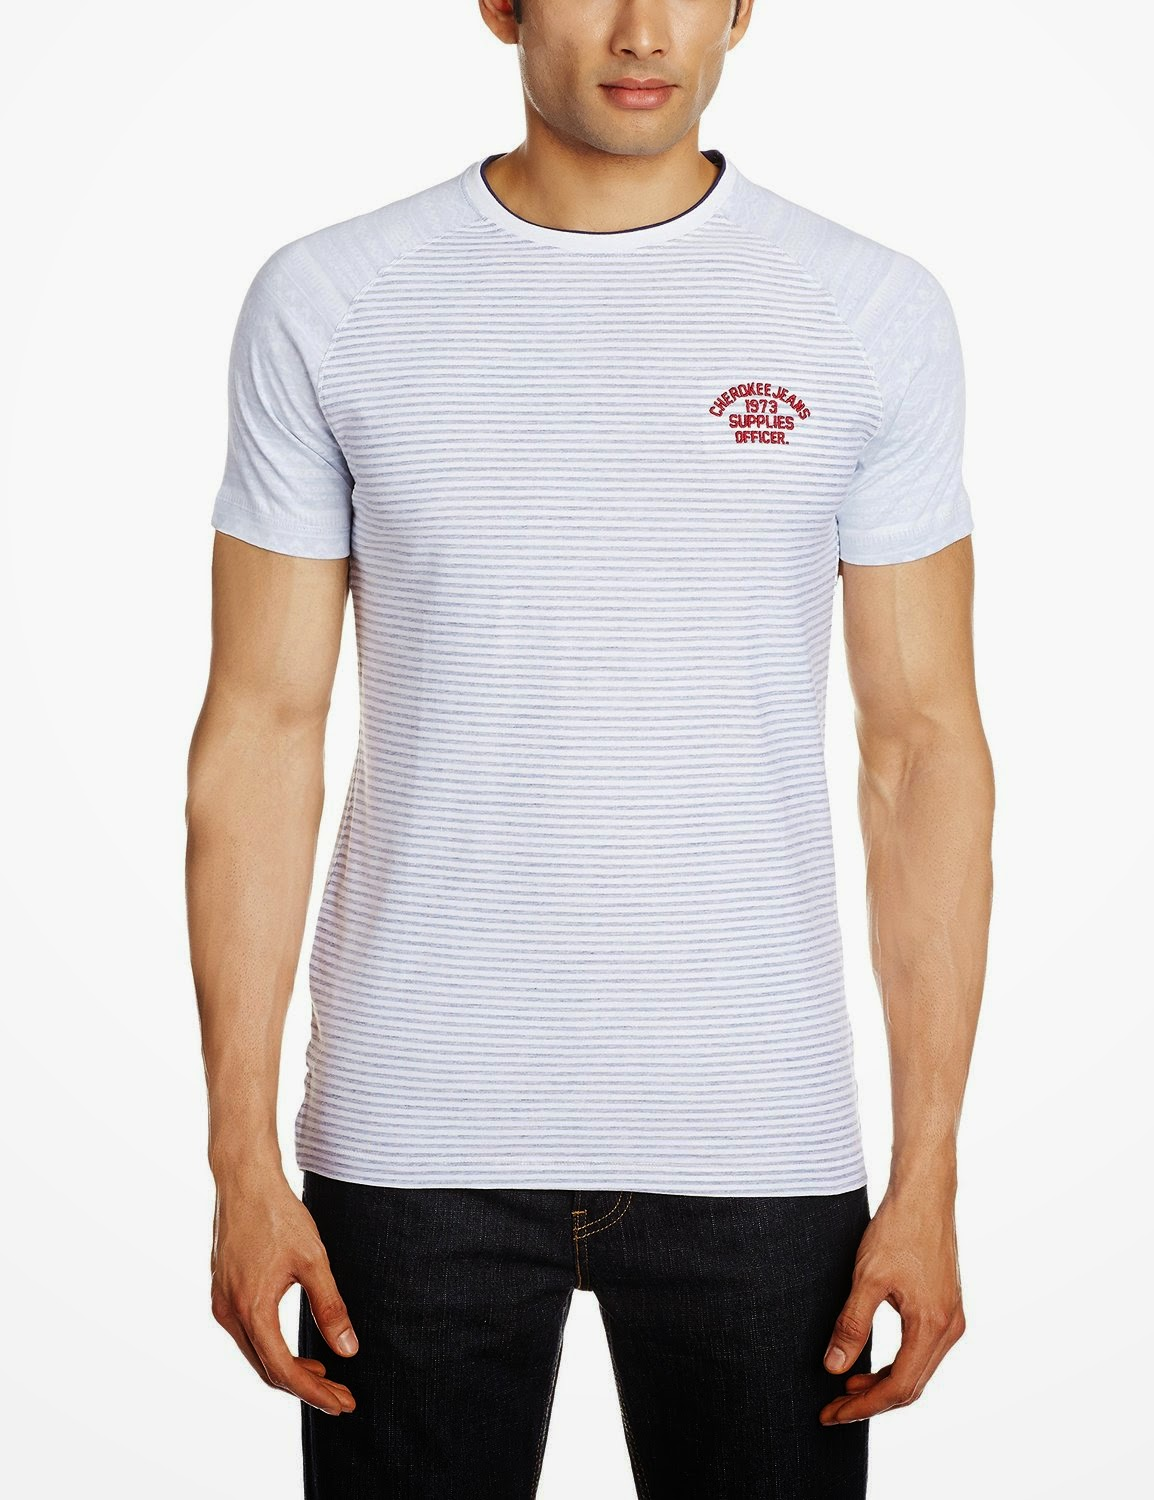 Buy Cherokee Men's Round Neck Cotton T-Shirt 60% OFF Rs. 199 only at Amazon.